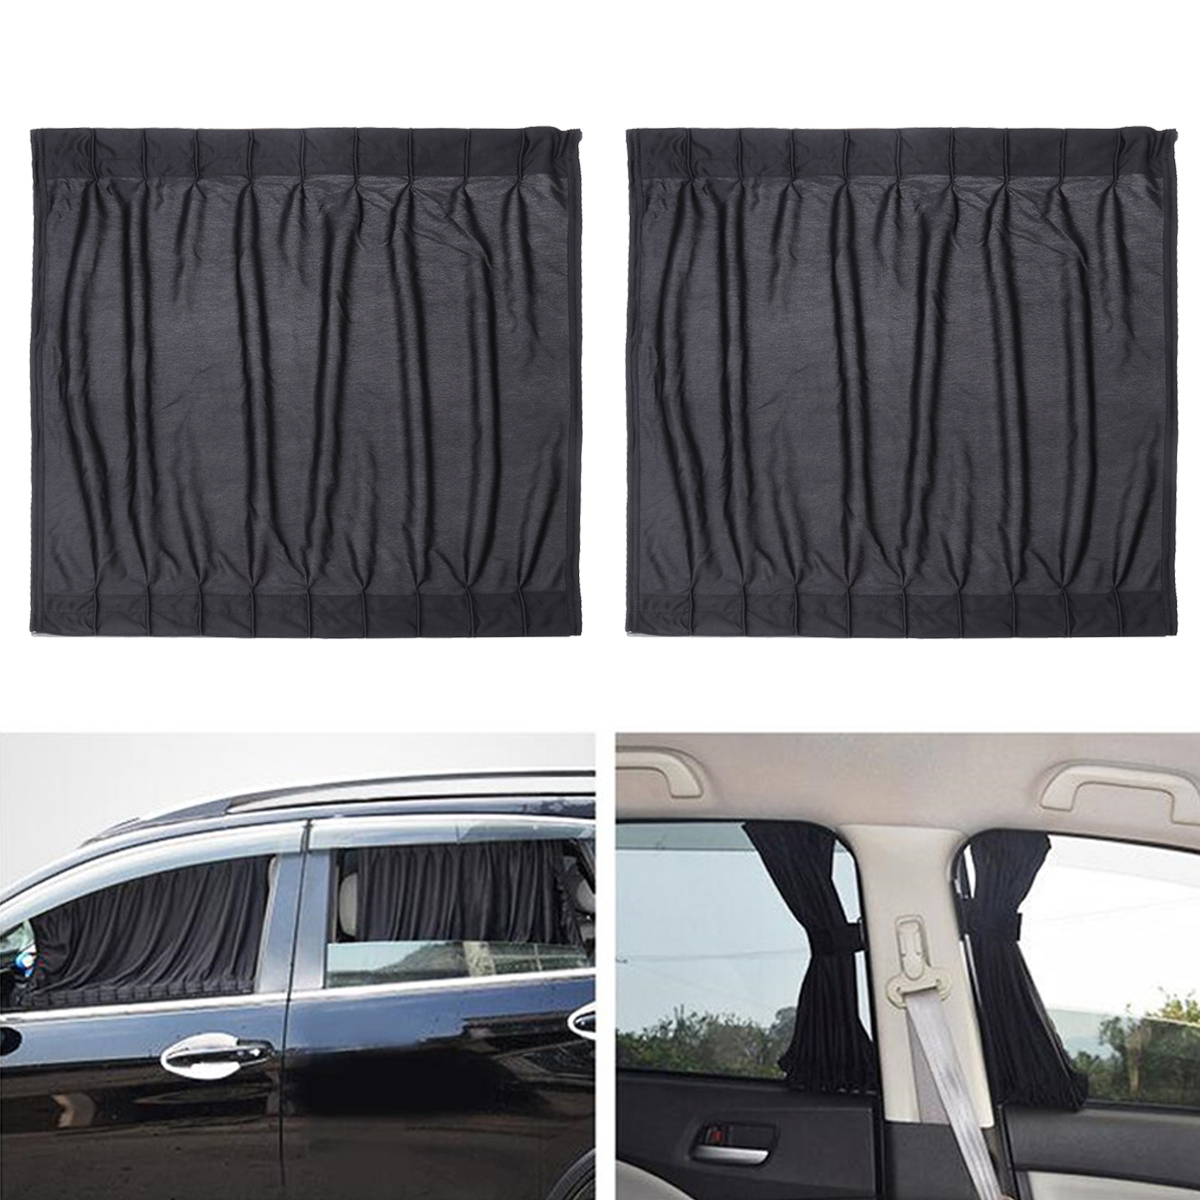 2pcs Car Side Window UV Protection Curtain Sun Shade Vehicle Slidable Retractable Window Shield for Sedan SUV